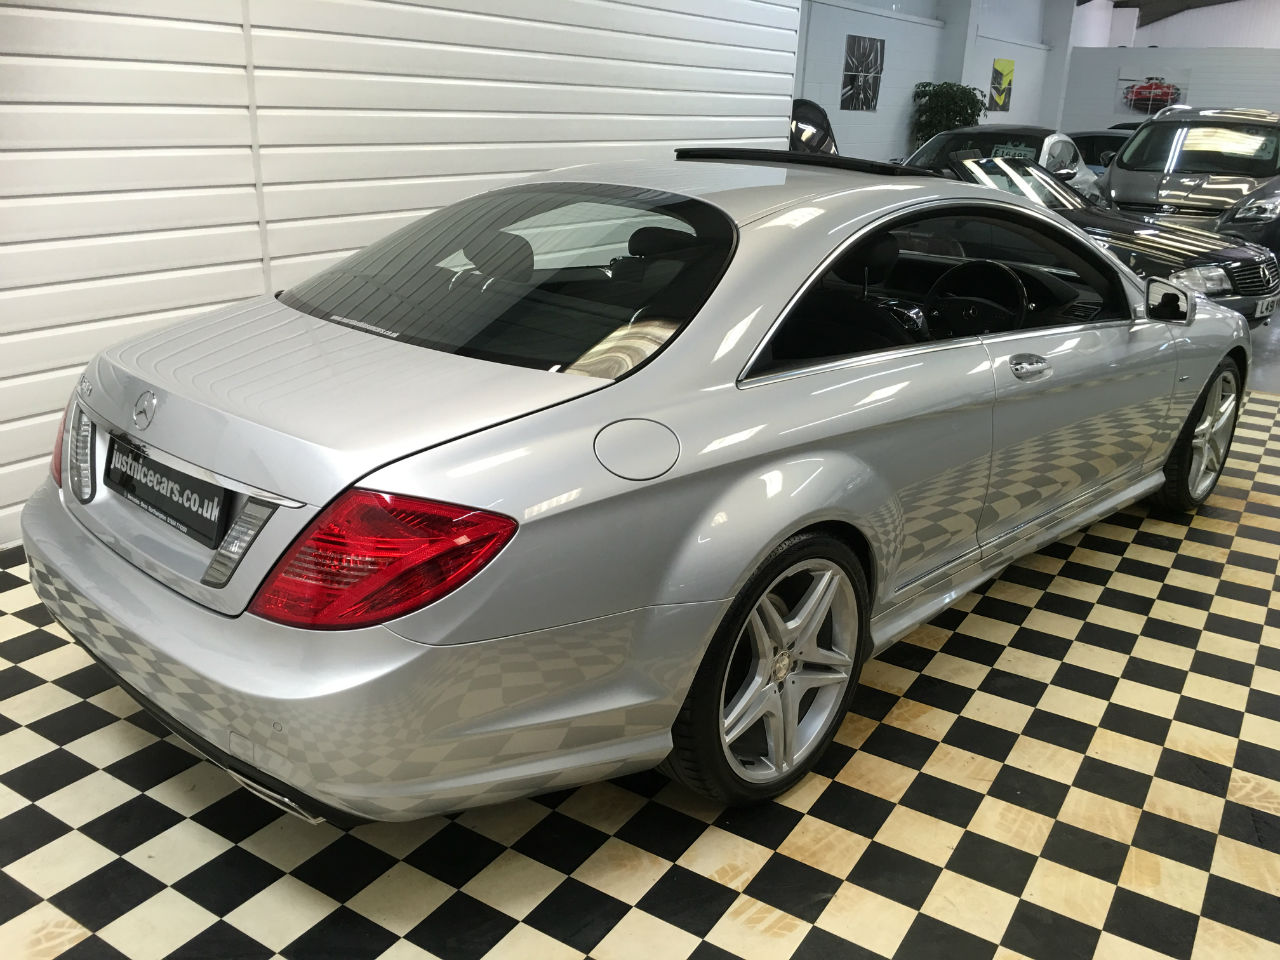 Mercedes-Benz CL CL 500 4.7 V8 7G-TronicBlueEFFICIENCY COUPE Coupe Petrol Silver